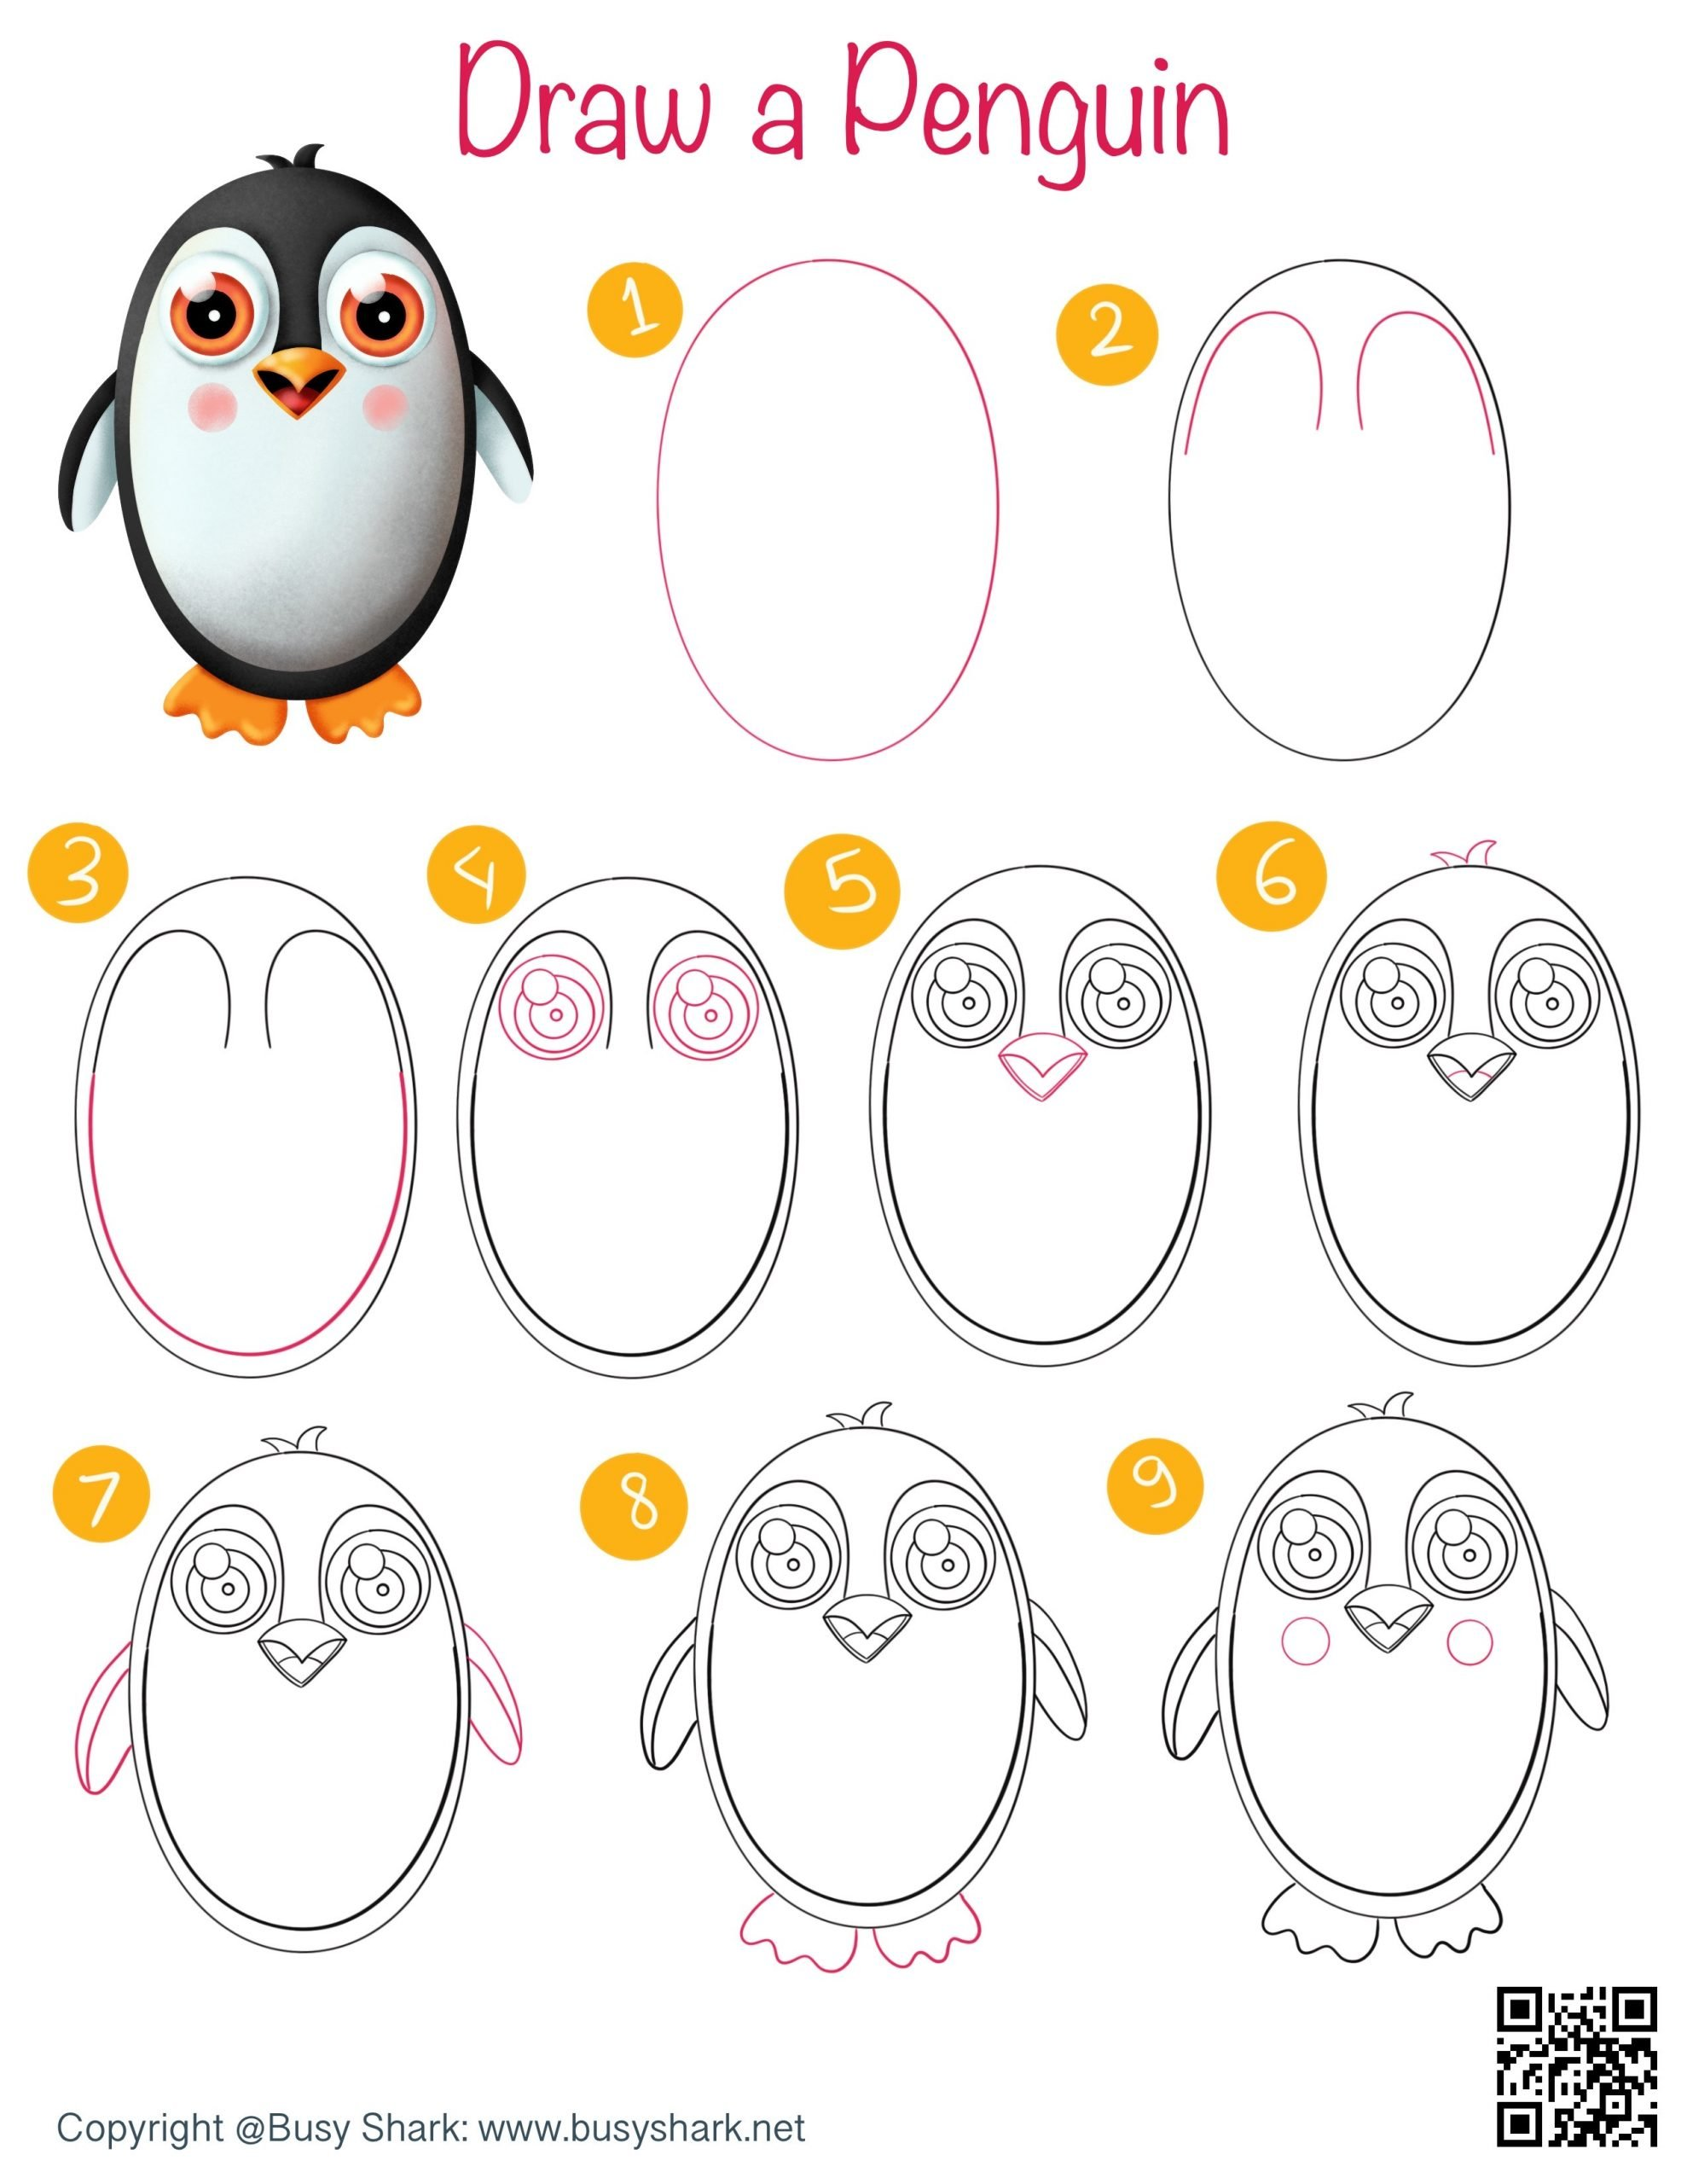 How to draw a penguin directed drawing step by step tutorial , winter drawing activity